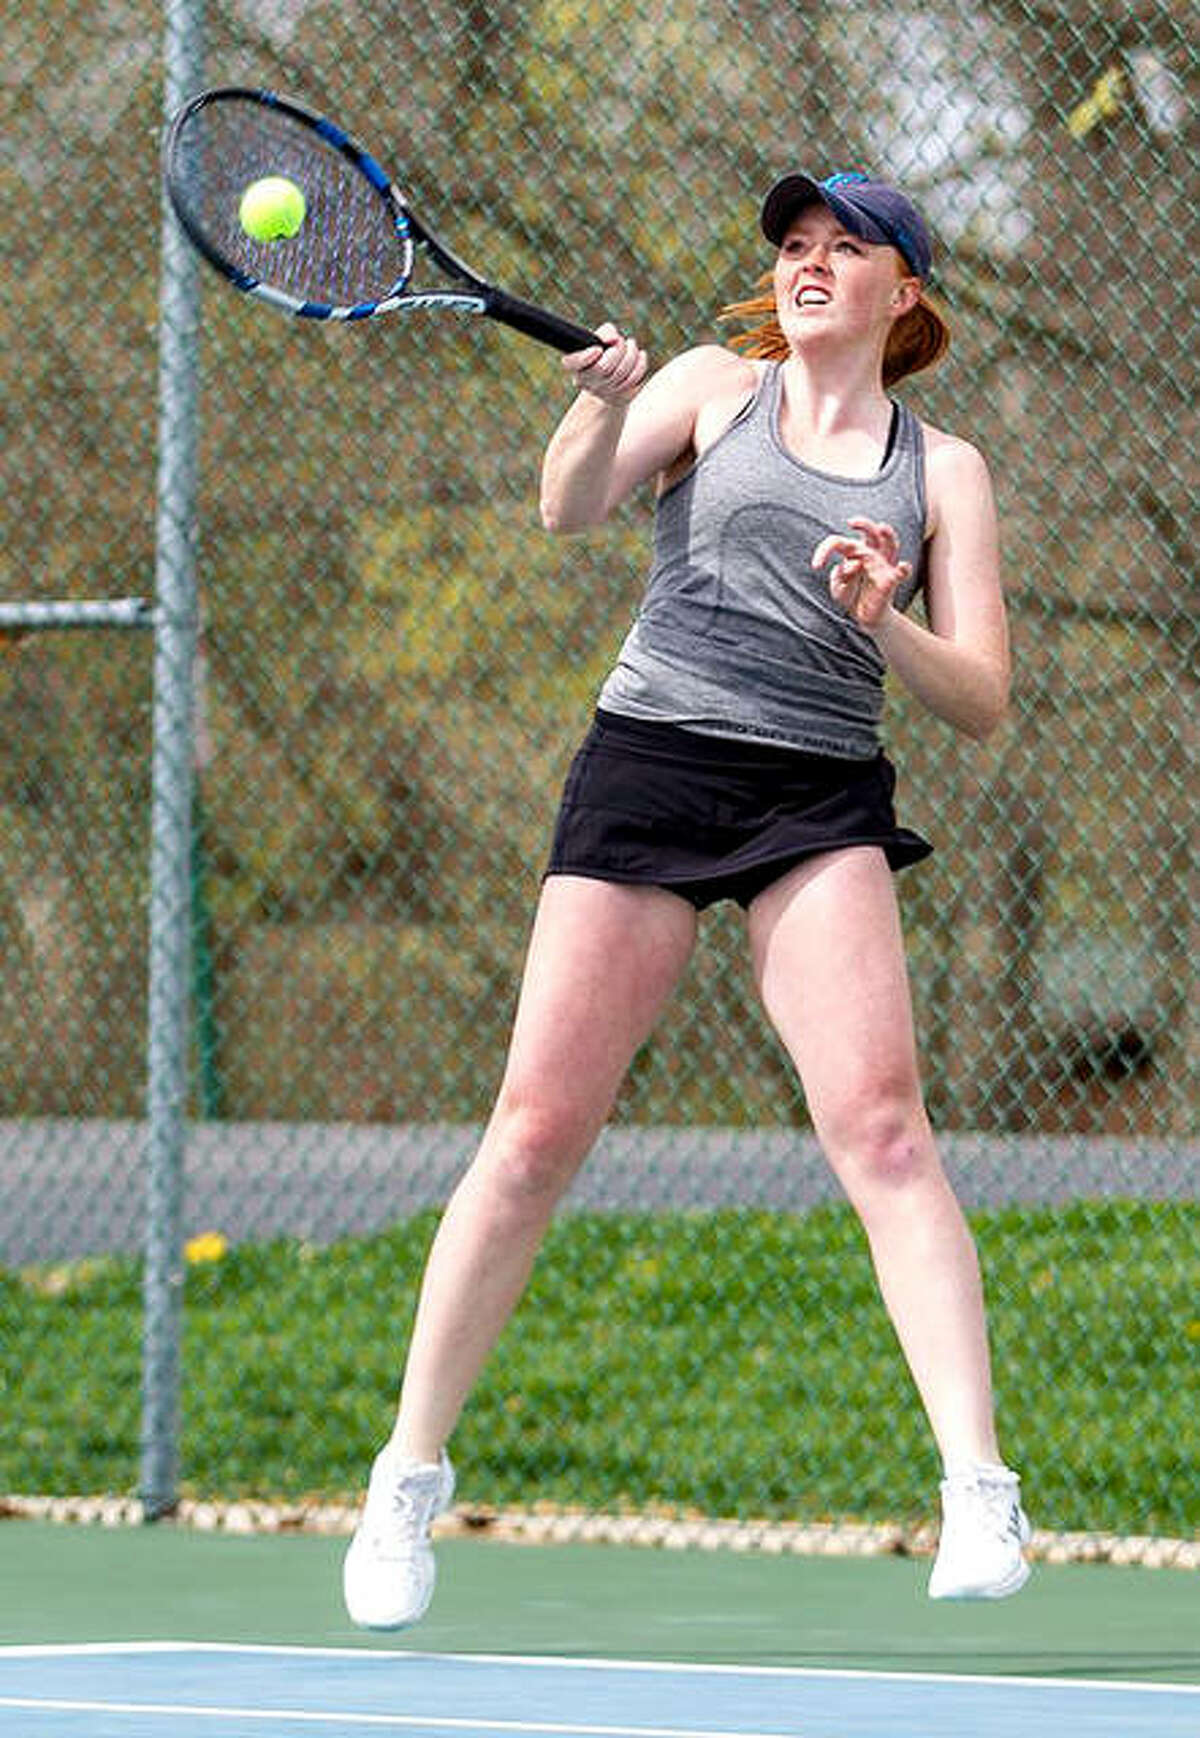 Former Principia great Paige Cooley has been named to the St. Louis Intercollegiate Athletic Conference All-Decade Women's Tennis Team, one of nine Prin players named to the squad. Cooley won the SLIAC the Player of the Year award in each of her three seasons on the court, becoming just the second player in conference history to win the award three times in her career.